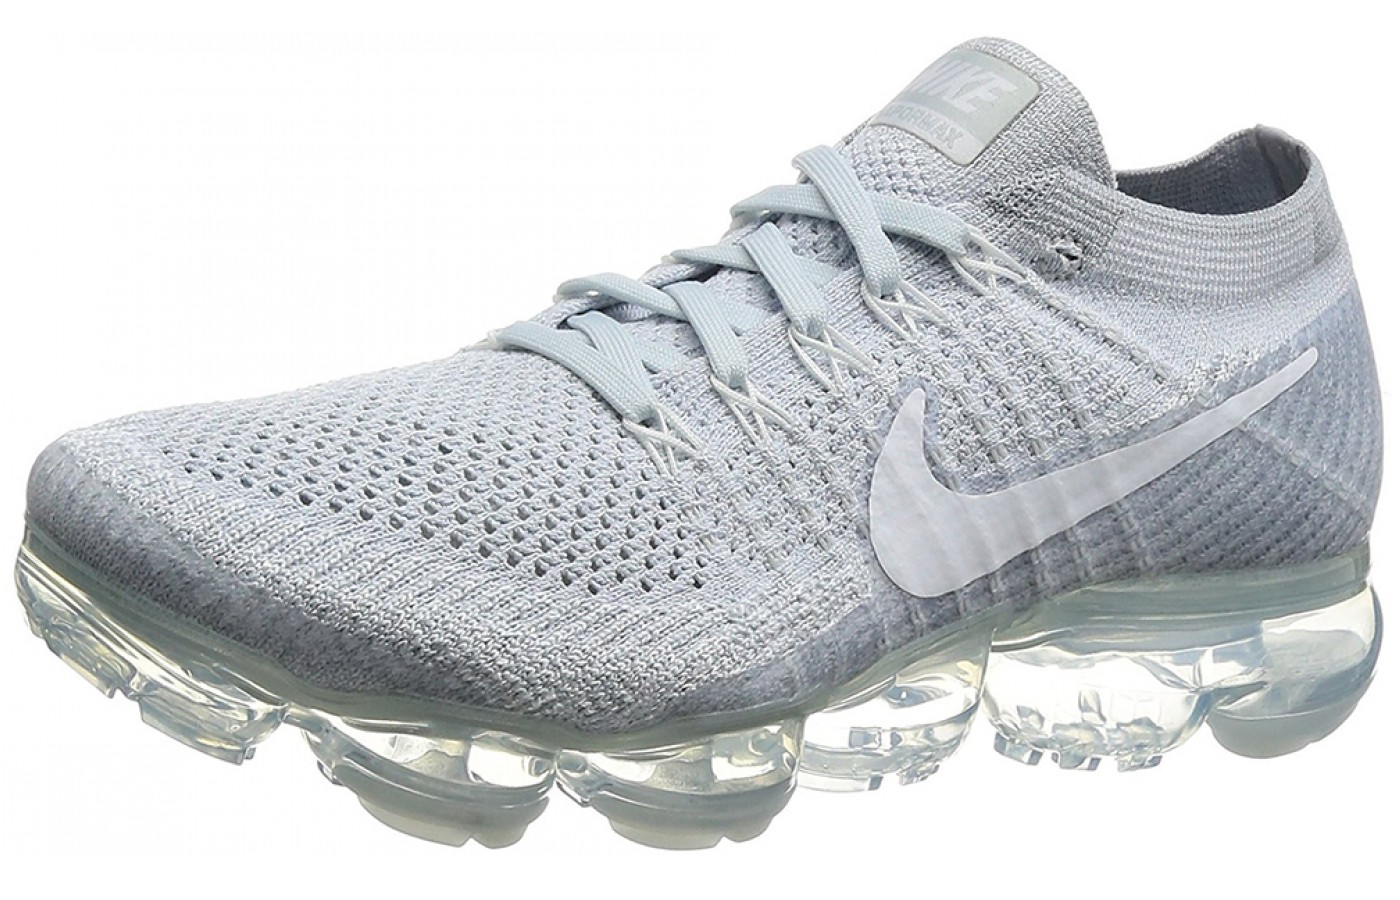 27cede55ed0 Three quarter view of the Nike Air Vapormax running shoe ...